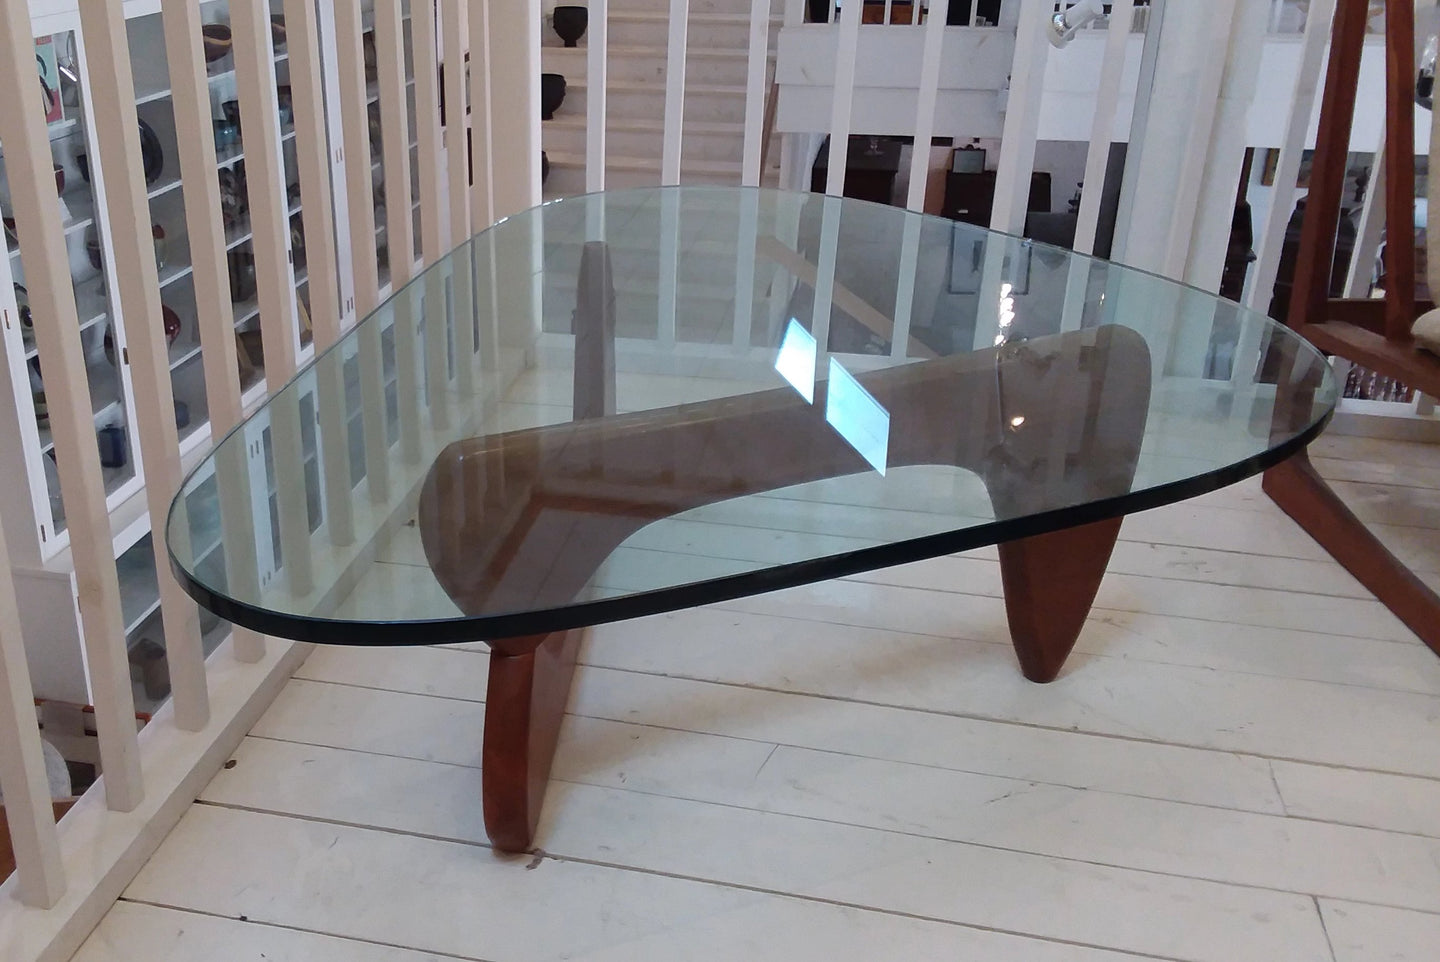 Iconic Low or Coffee Table, Designed  by Isamu Noguchi (1904 -1988)